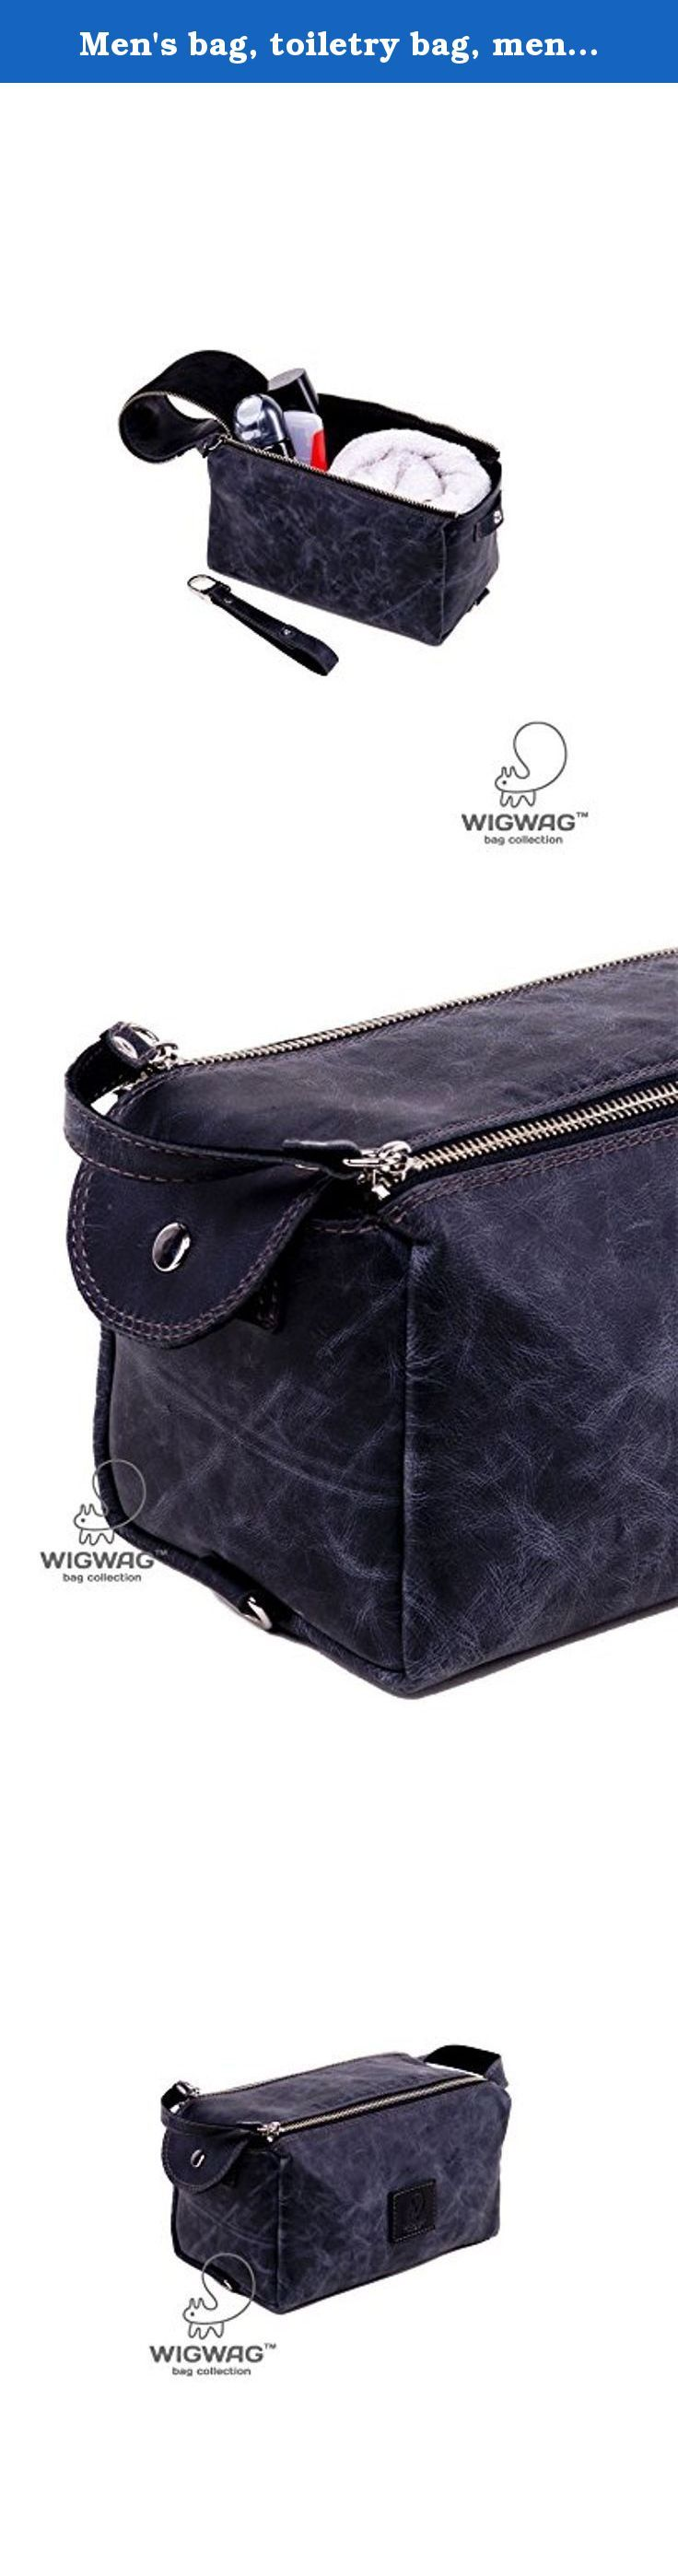 Men's bag, toiletry bag, mens toiletry bag, dopp kit, travel bag, leather travel bag, leather bag, handle men's bag, men's leather bag. Men's toiletry bag, made of genuine leather. This bag closes on two parallel-arranged metal zipper (this closure system is the most convenient for this bag). The valve is fixed with a button when it is close. Inside of the toiletry bag there is a genuine suede. The bag has a handle for easy carring. This bag made of genuine leather. It is designed for...